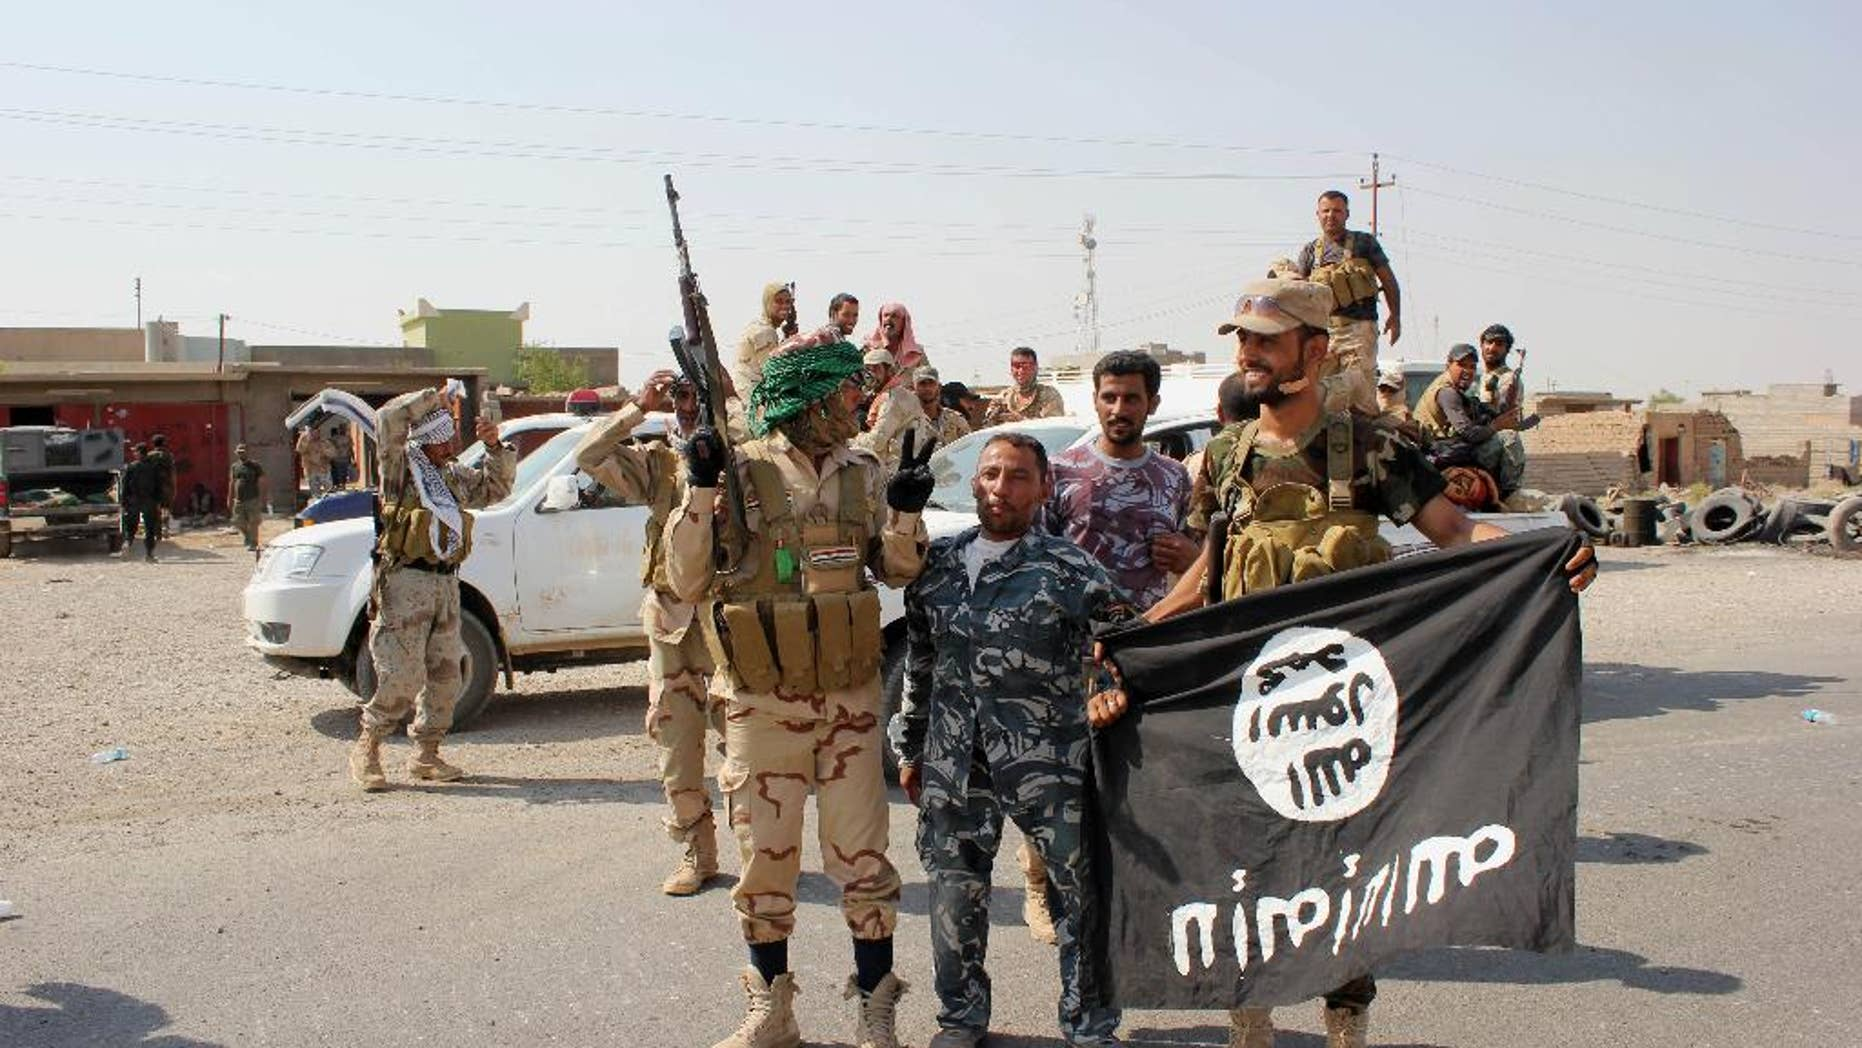 """In this Monday, Sept. 1, 2014 photo, Shiite militiamen hold the flag of the Islamic State group they captured, during an operation outside Amirli, some 105 miles (170 kilometers) north of Baghdad, Iraq. Under the shadow of the Islamic State group threat, governments from France to Indonesia are moving aggressively to block would-be jihadis from taking their fight to Syria and Iraq. New laws make it easier to seize passports. Suspected fighters are being plucked from planes. Authorities are blocking finances and shutting down radical mosques. Behind the scenes, Western intelligence agencies are striving to stay ahead of tech-savvy radicalized Muslims by pressuring Silicon Valley firms to wipe extremist content from websites and toying with new technologies to identify returning fighters at the border. Britain has taken a particularly active role in censoring content deemed to break the country's strict rules against extremist propaganda. U.K. officials recently revealed it had been granted """"super flagger"""" status on sites such as YouTube, meaning their requests to remove videos with grisly content or that encourage terrorism are fast-tracked. (AP Photo)"""